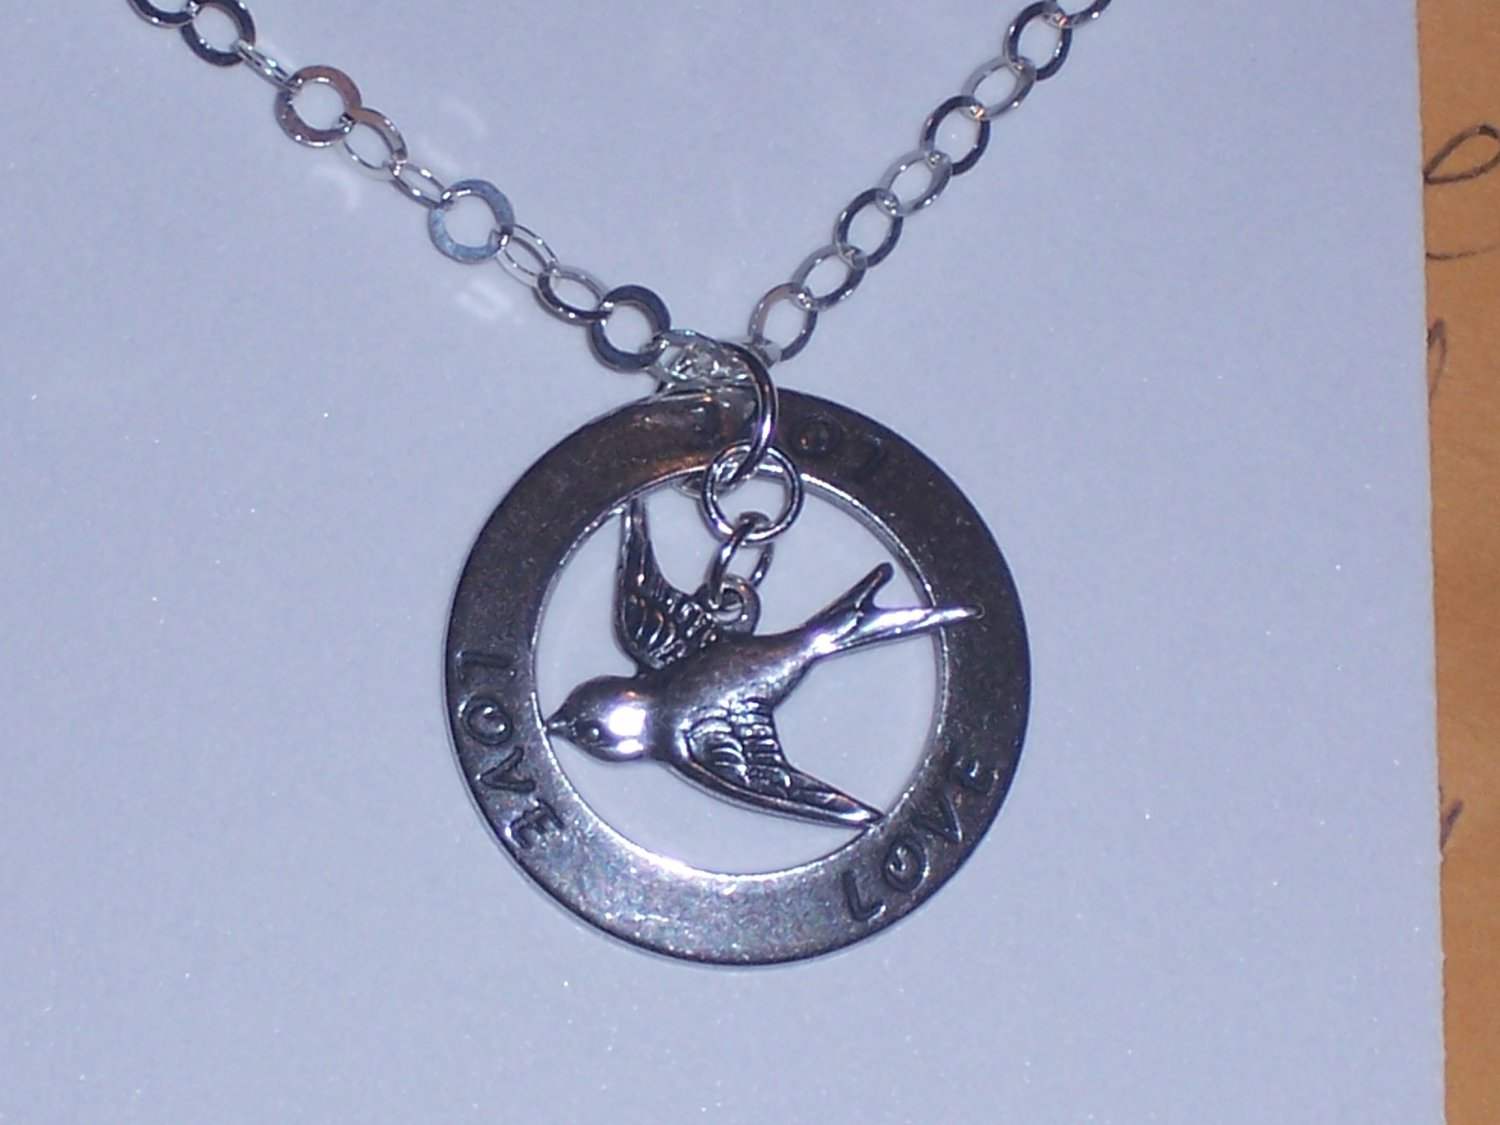 Sparrow Bird Necklace over a Love Circle Ring on Sterling silver Chain FREE SHIPPING TO THE U.S.